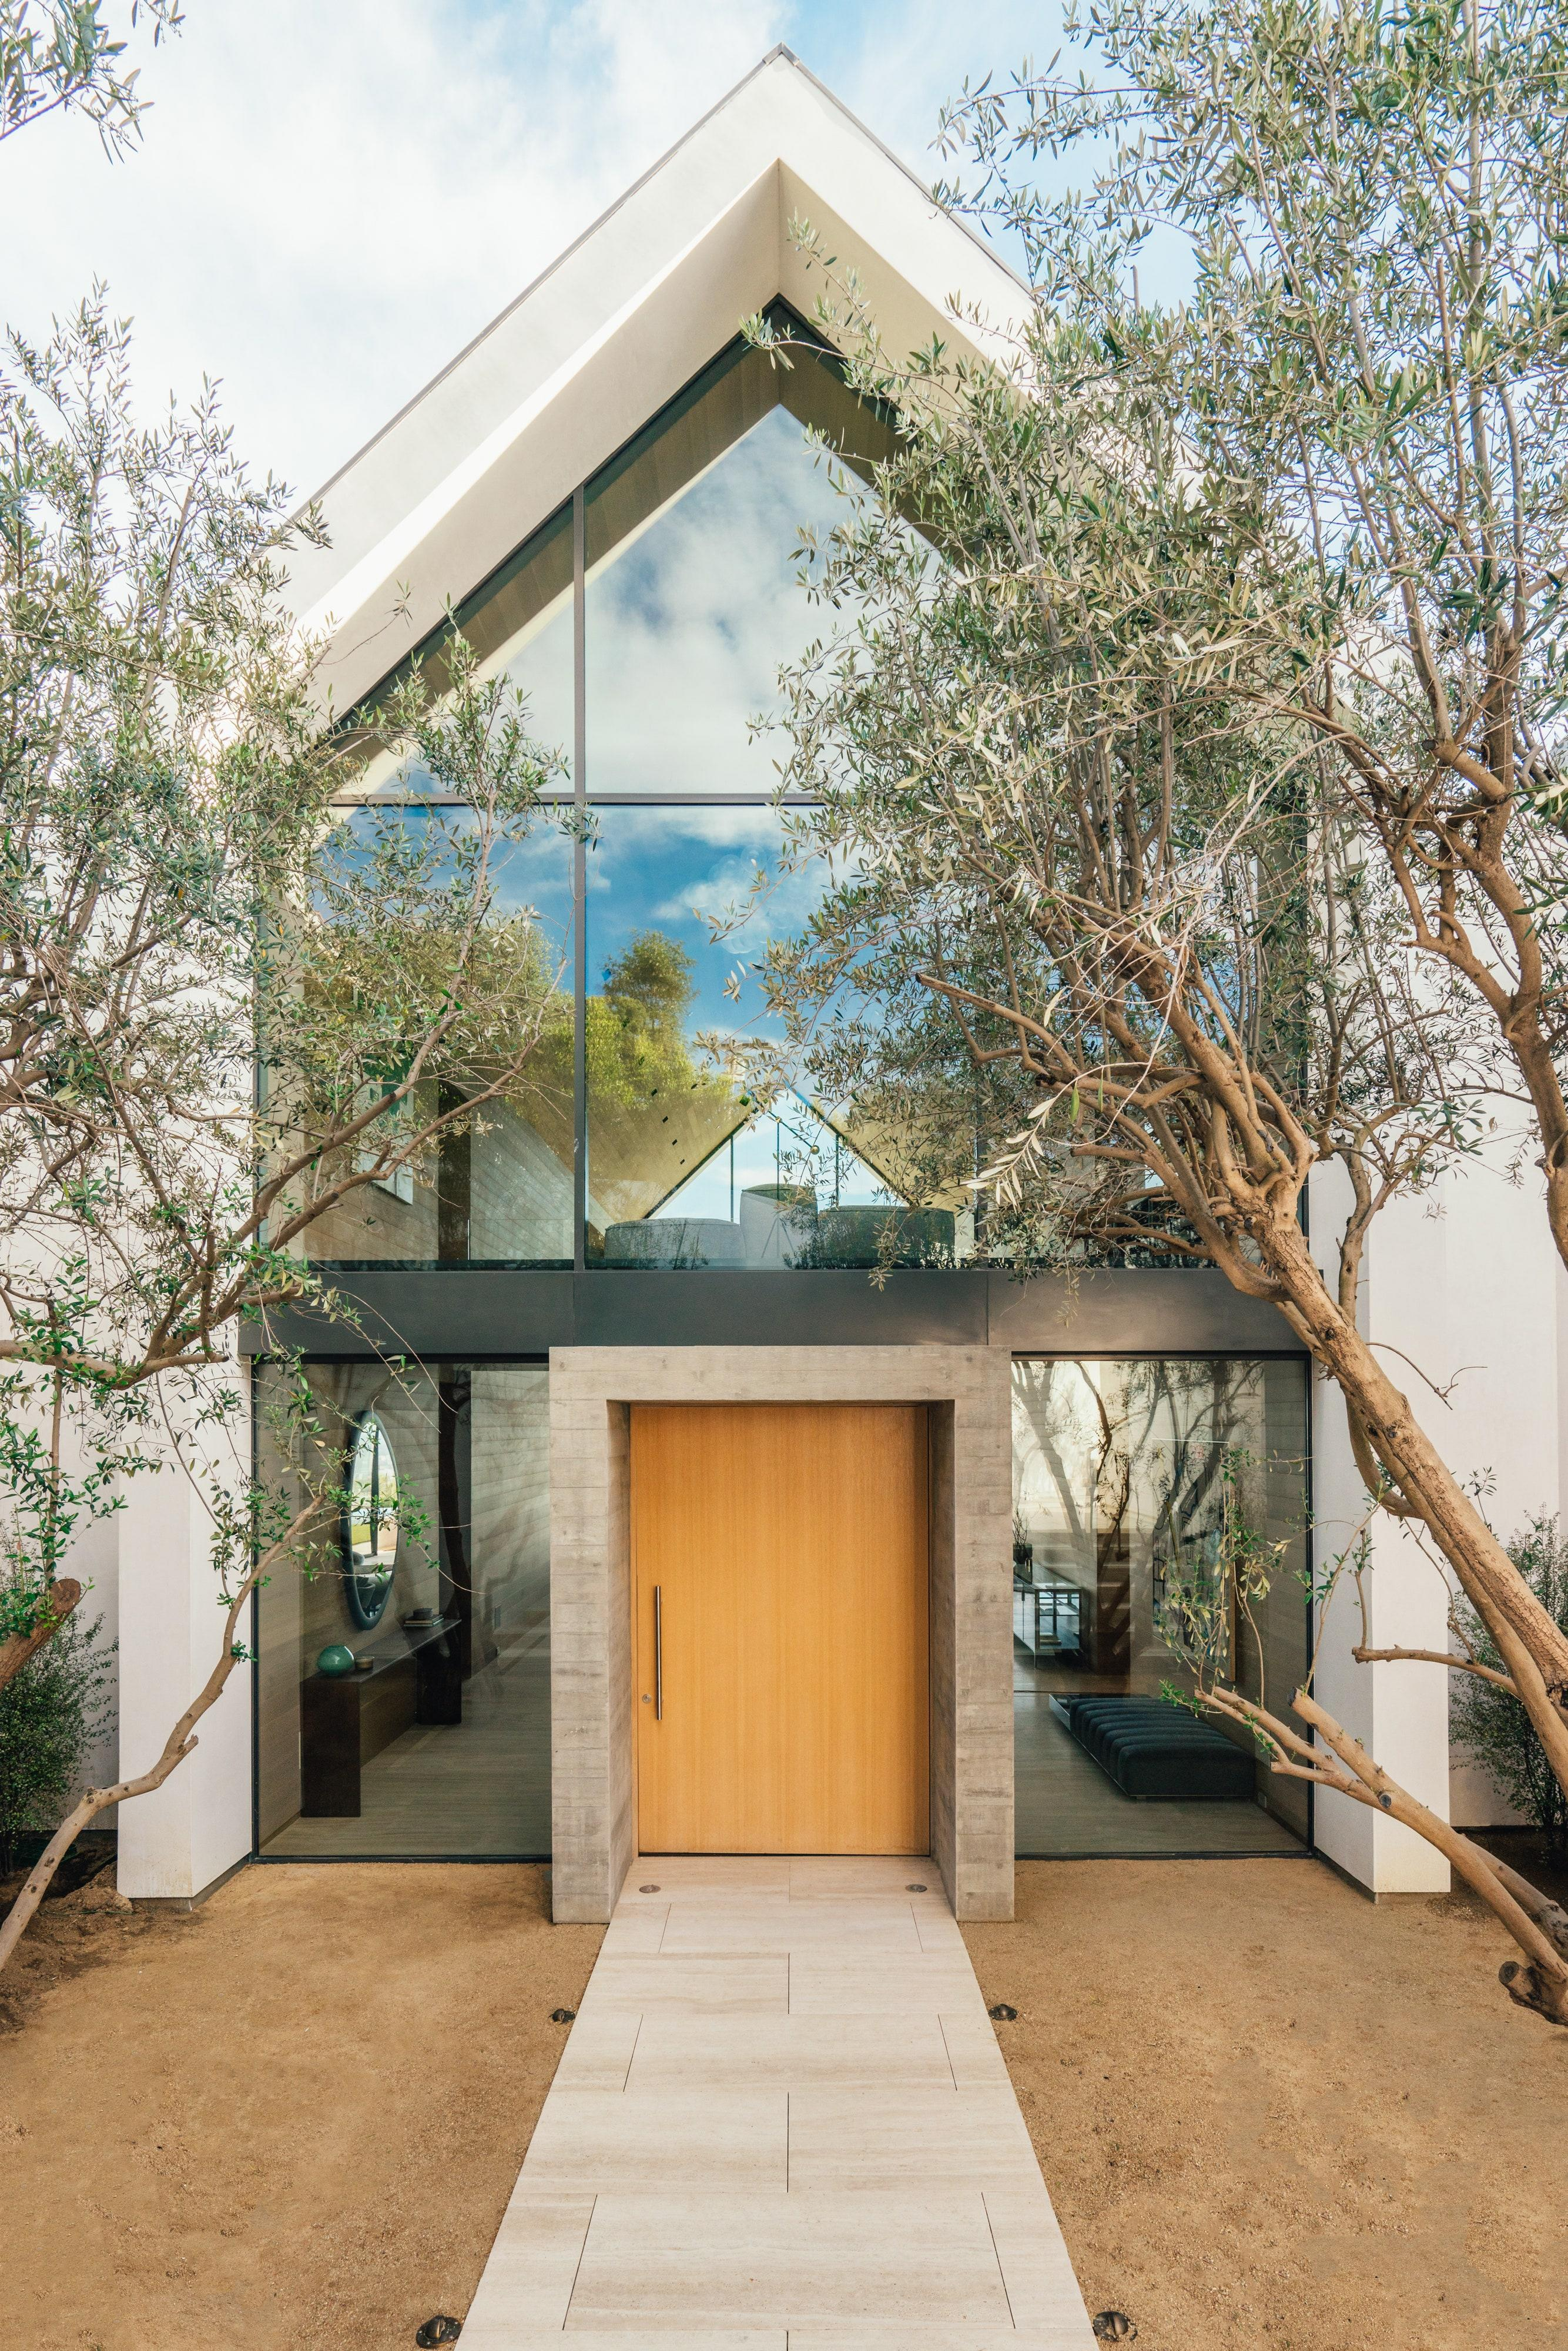 """""""The house is tall and the space was tight, so creating a meaningful entry experience was the biggest challenge,"""" says Allsbrook. """"Arriving at the house, you descend into a small courtyard that has a more intimate scale. We framed the door in a concrete cube flanked by two mature olive trees. These elements bring a human scale to the house and precede the drama of the interior height."""""""